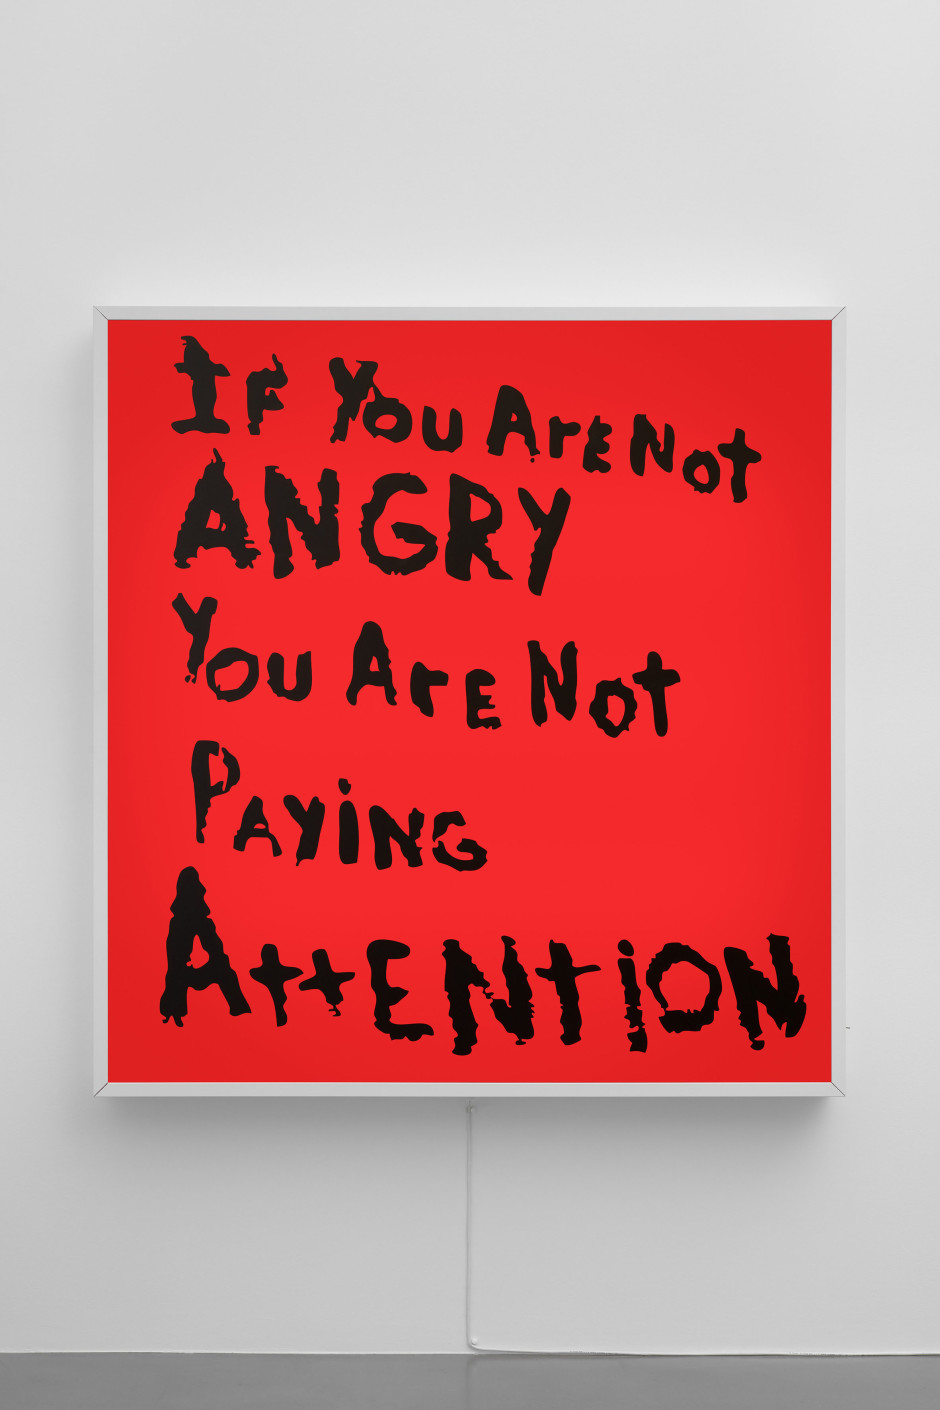 If You Are Not Angry You Are Not Paying Attention, 2017  light box  176.0 x 166.0 x 15.0 cm 69 1/4 x 65 1/4 x 5 7/8 in.